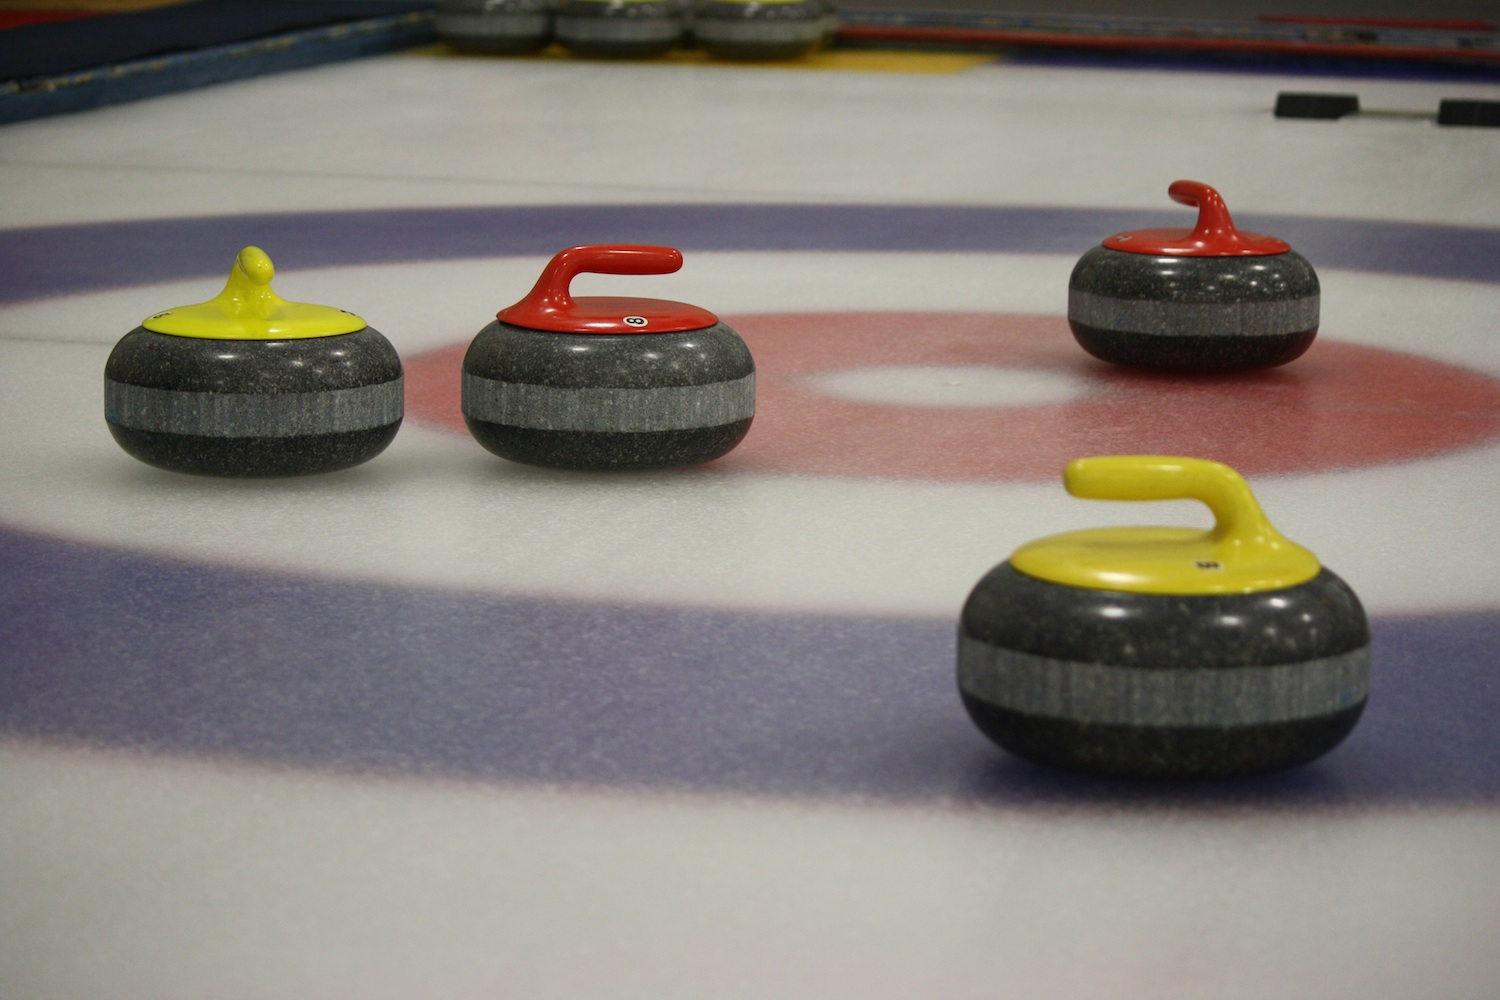 curlingrocks